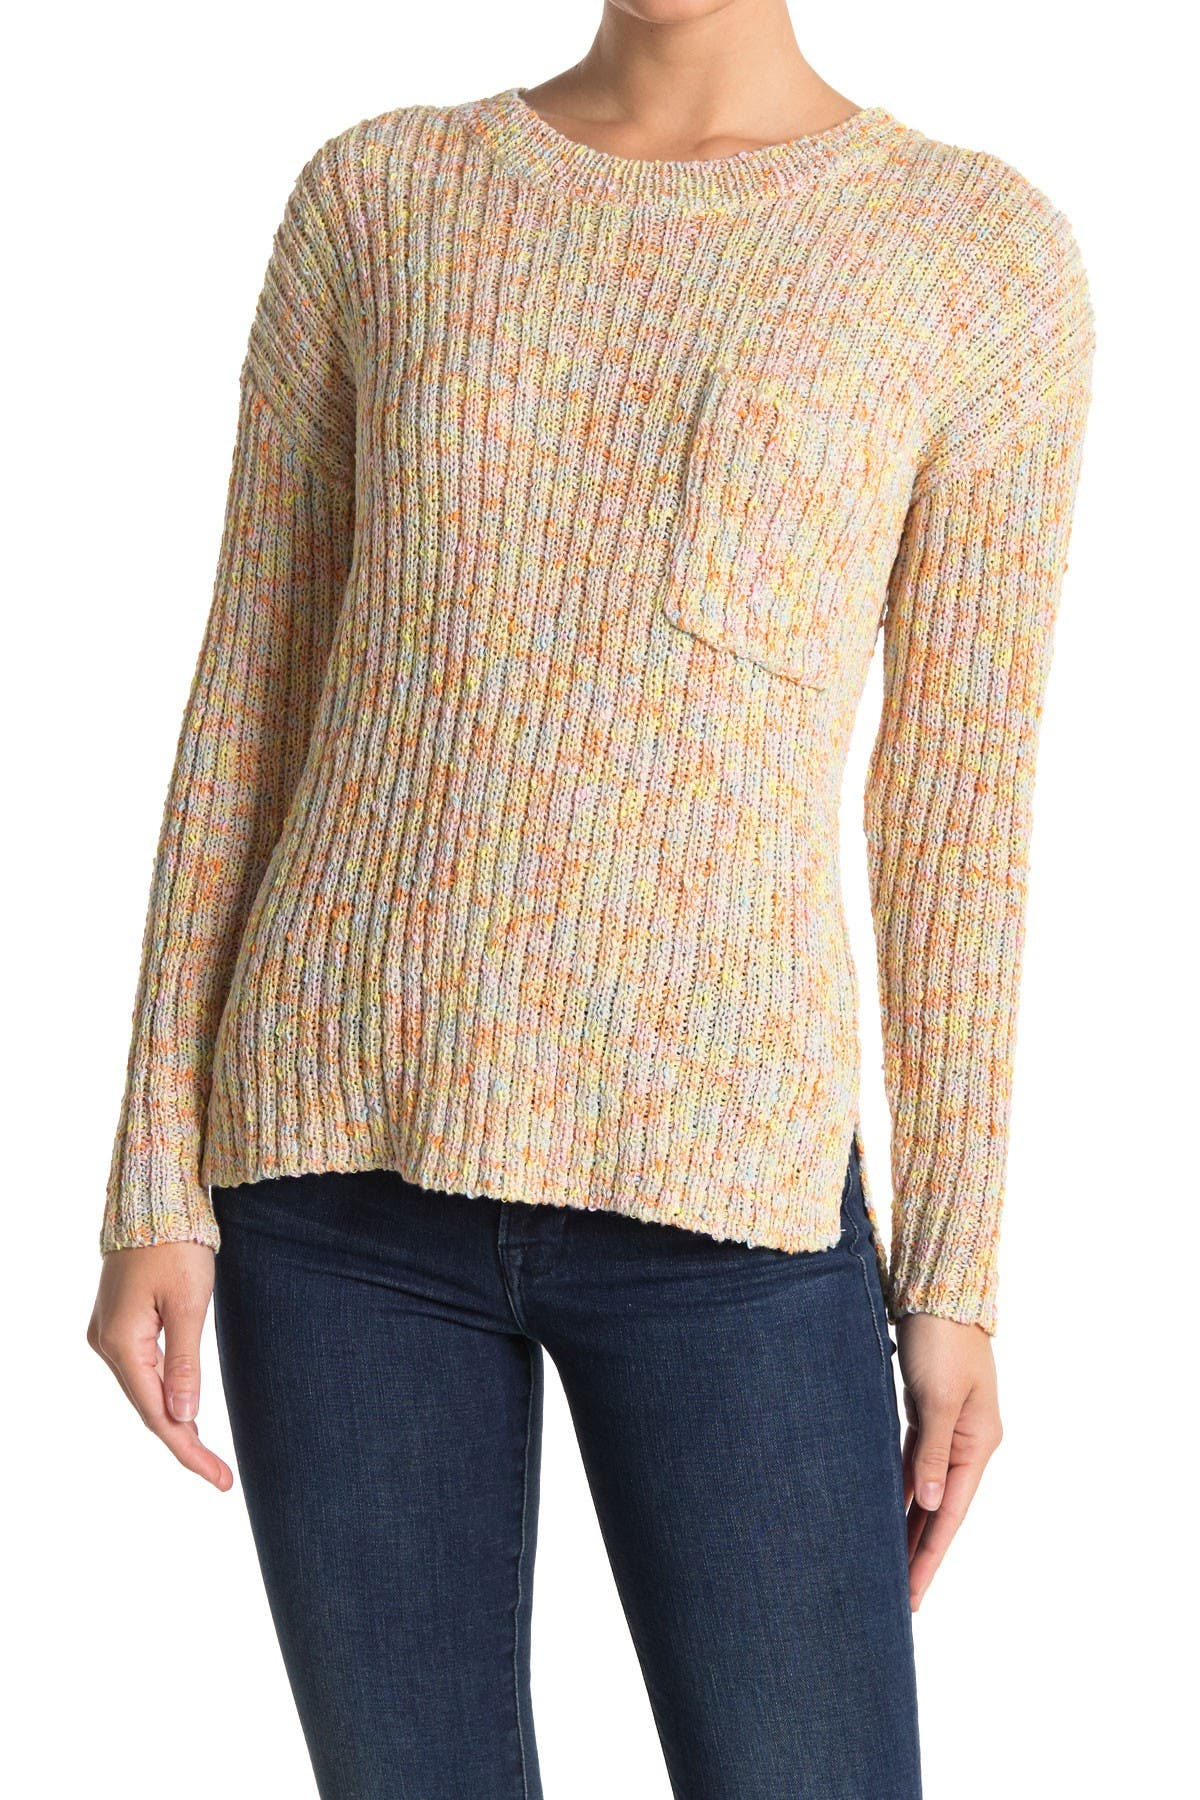 Image of Lush Multi Stripe Print Knit Sweater